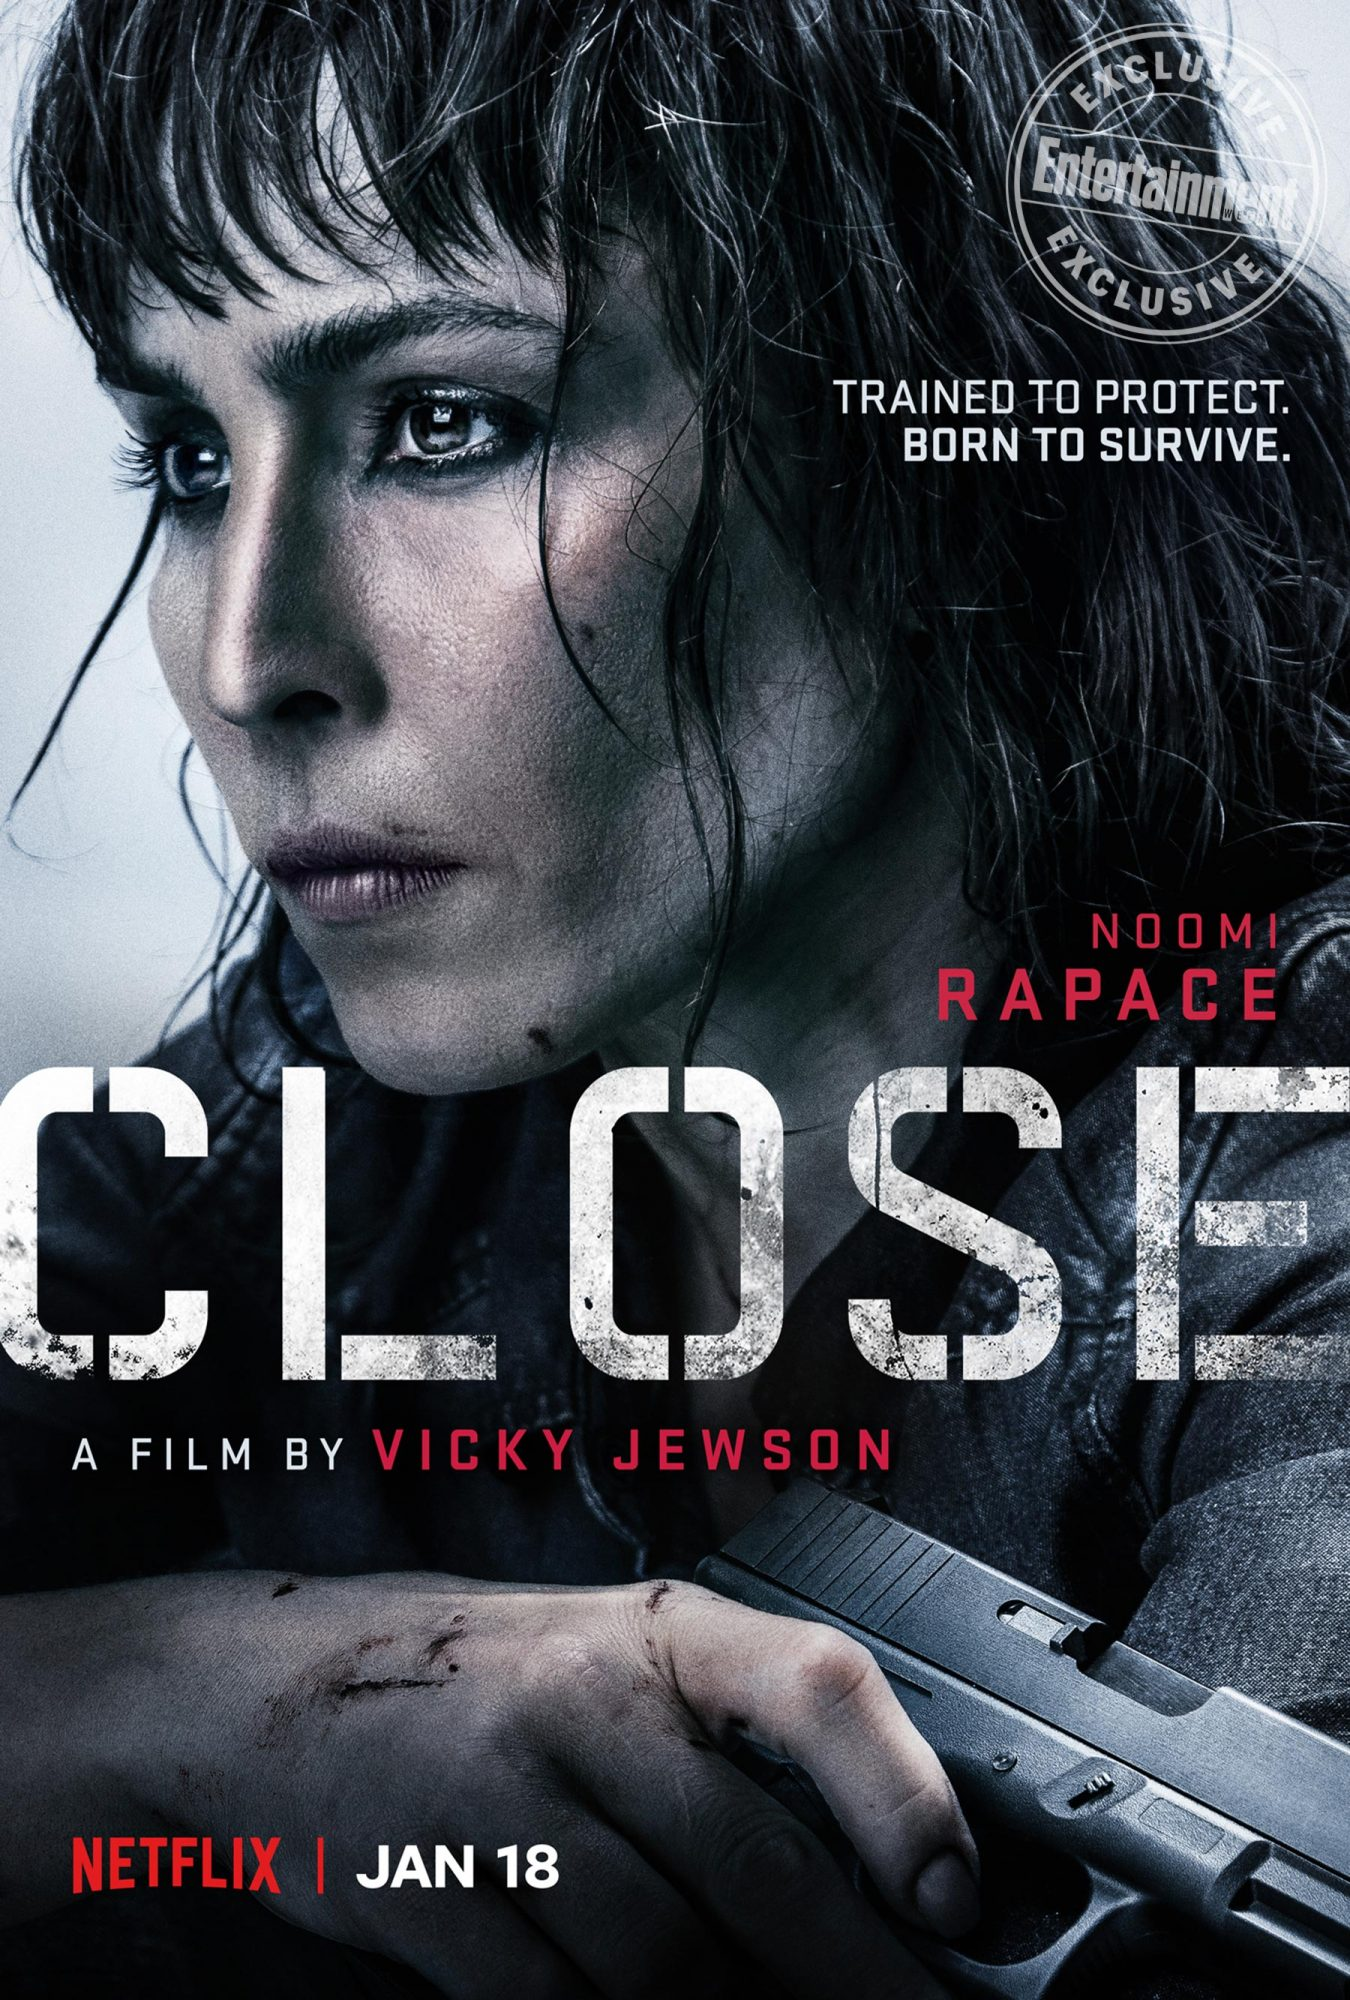 Noomi Rapace Stars As Female Bodyguard In Trailer For Netflix S Close Ew Com